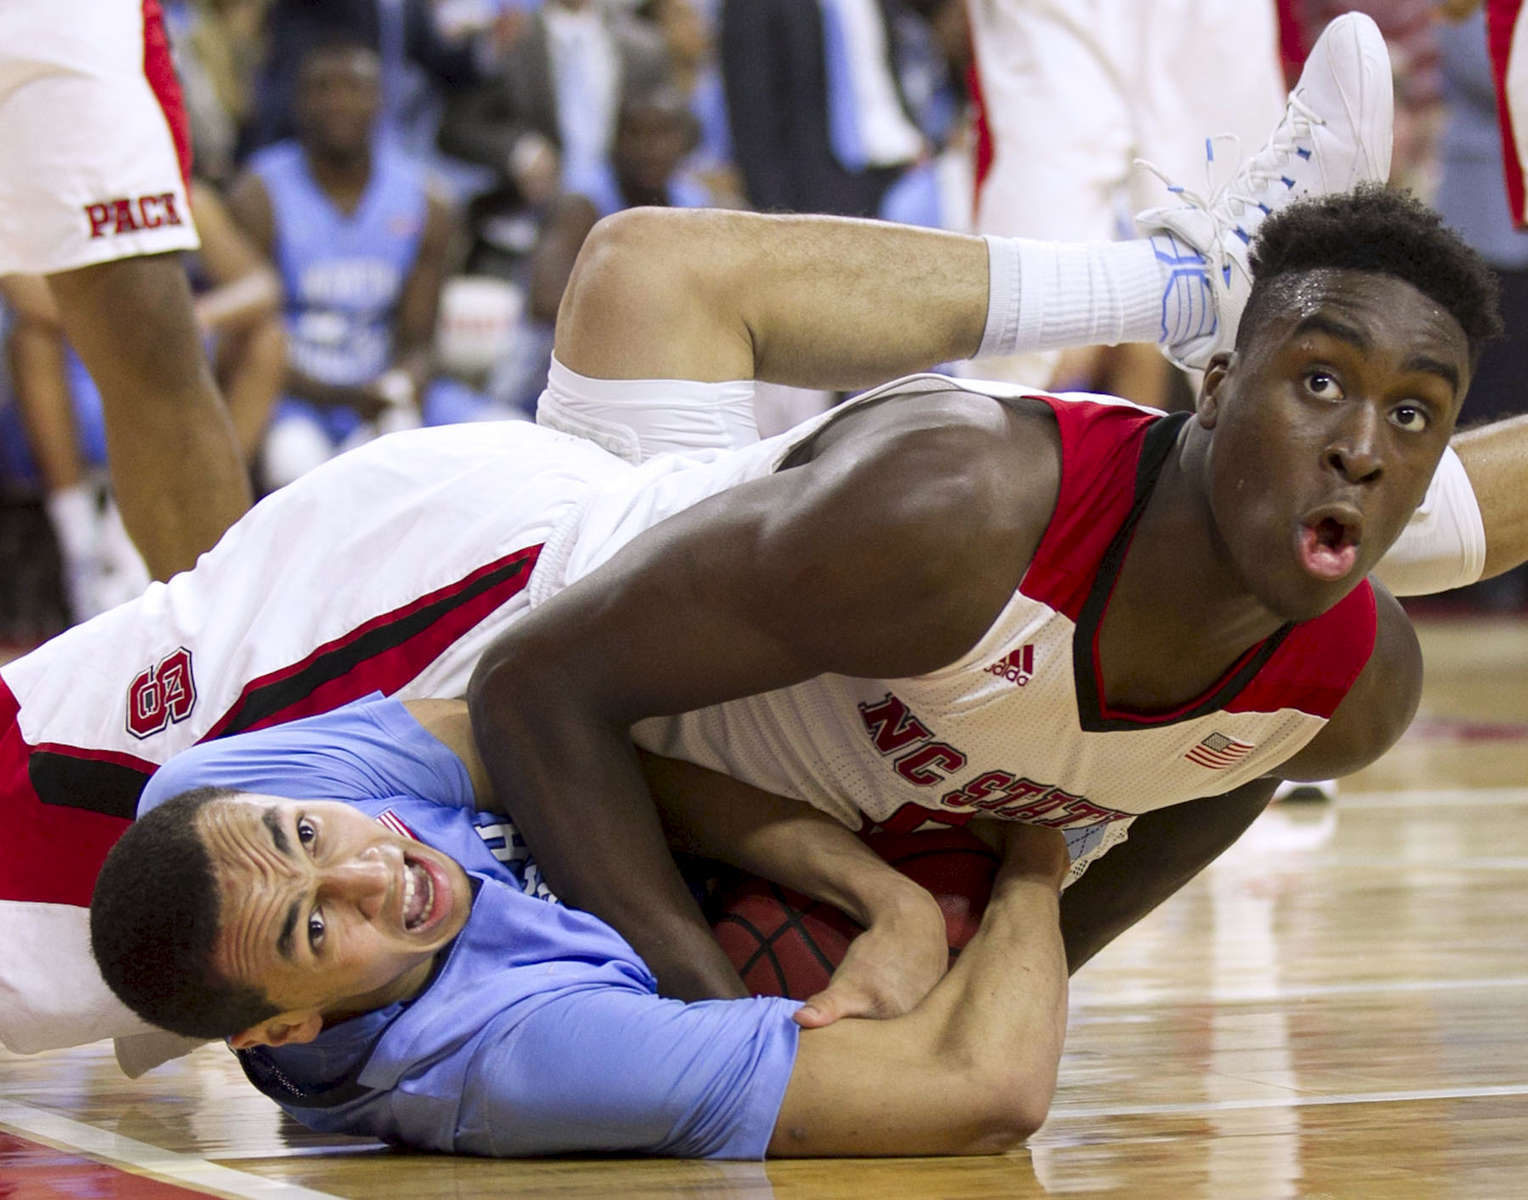 Honorable Mention I SportsRobert Willett, News & Observer UNC's Marcus Paige (5) and N.C. State's Abdul-Malik Abu (0) get tangled during a battle for a loose ball during the second half on Wednesday, January 14, 2014 at the PNC Arena in Raleigh, N.C.